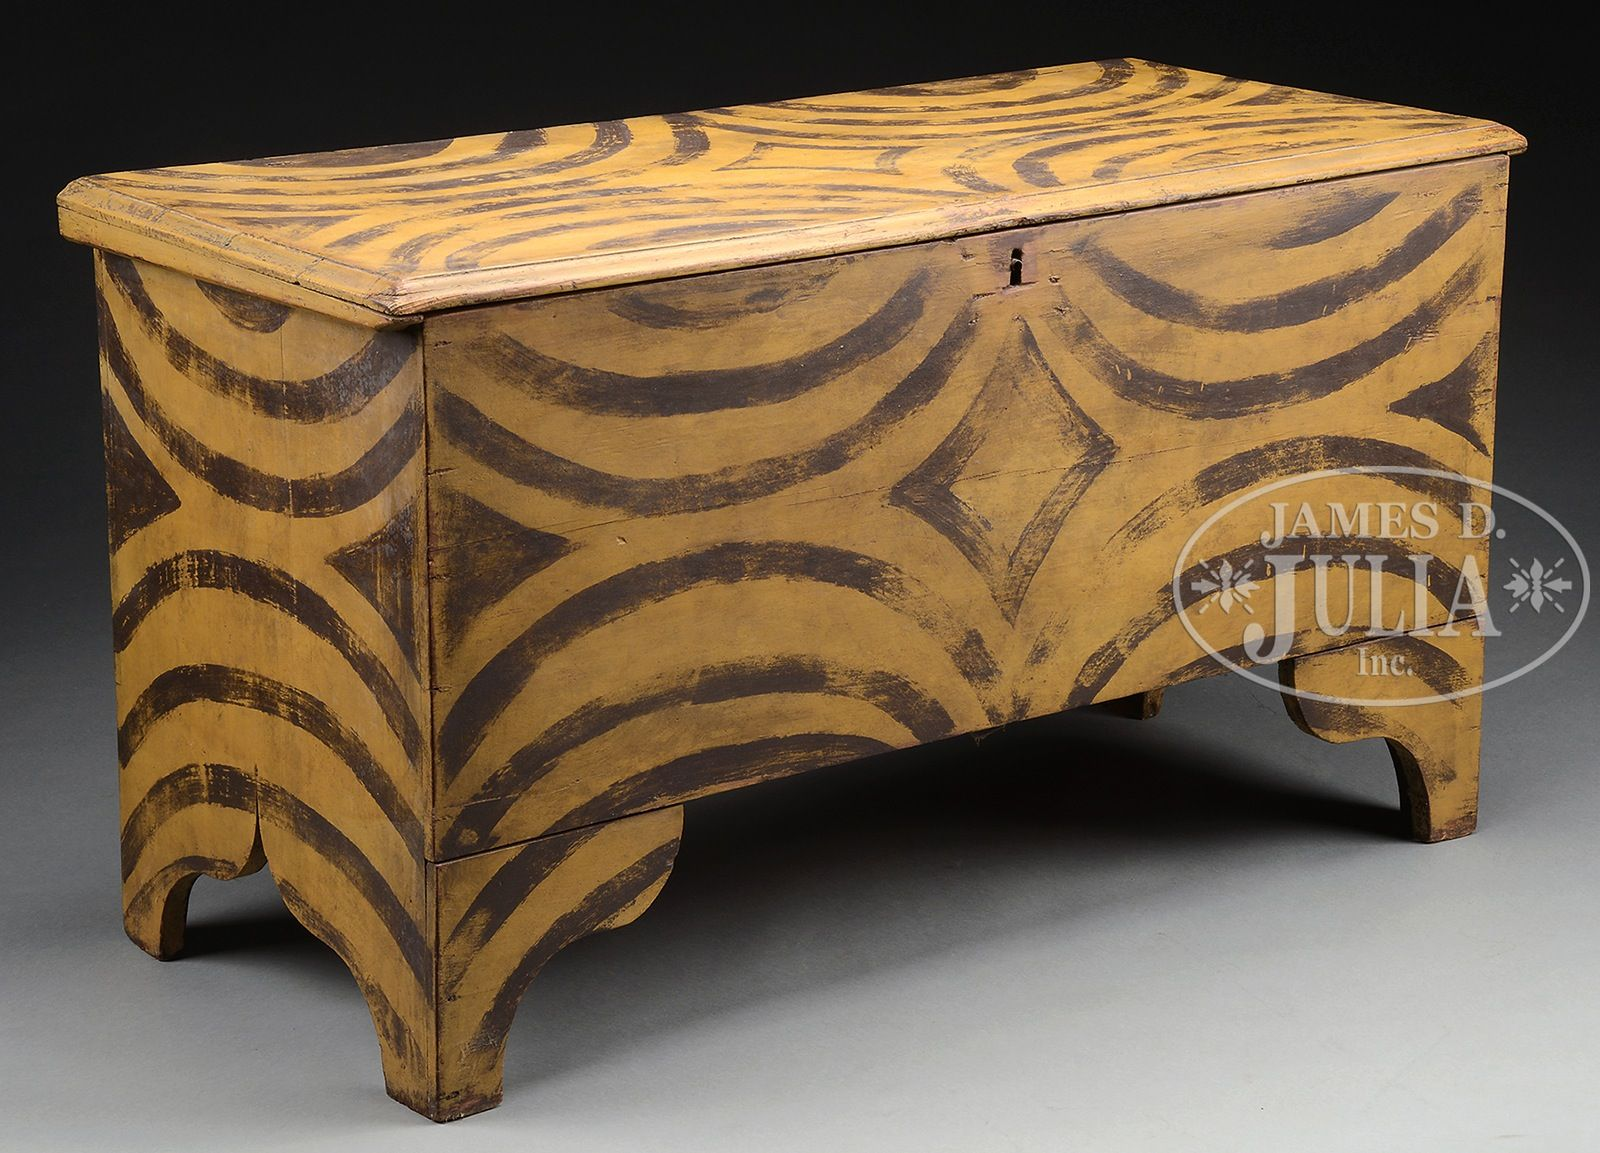 EARLY AMERICAN SPONGE DECORATED BLANKET CHEST